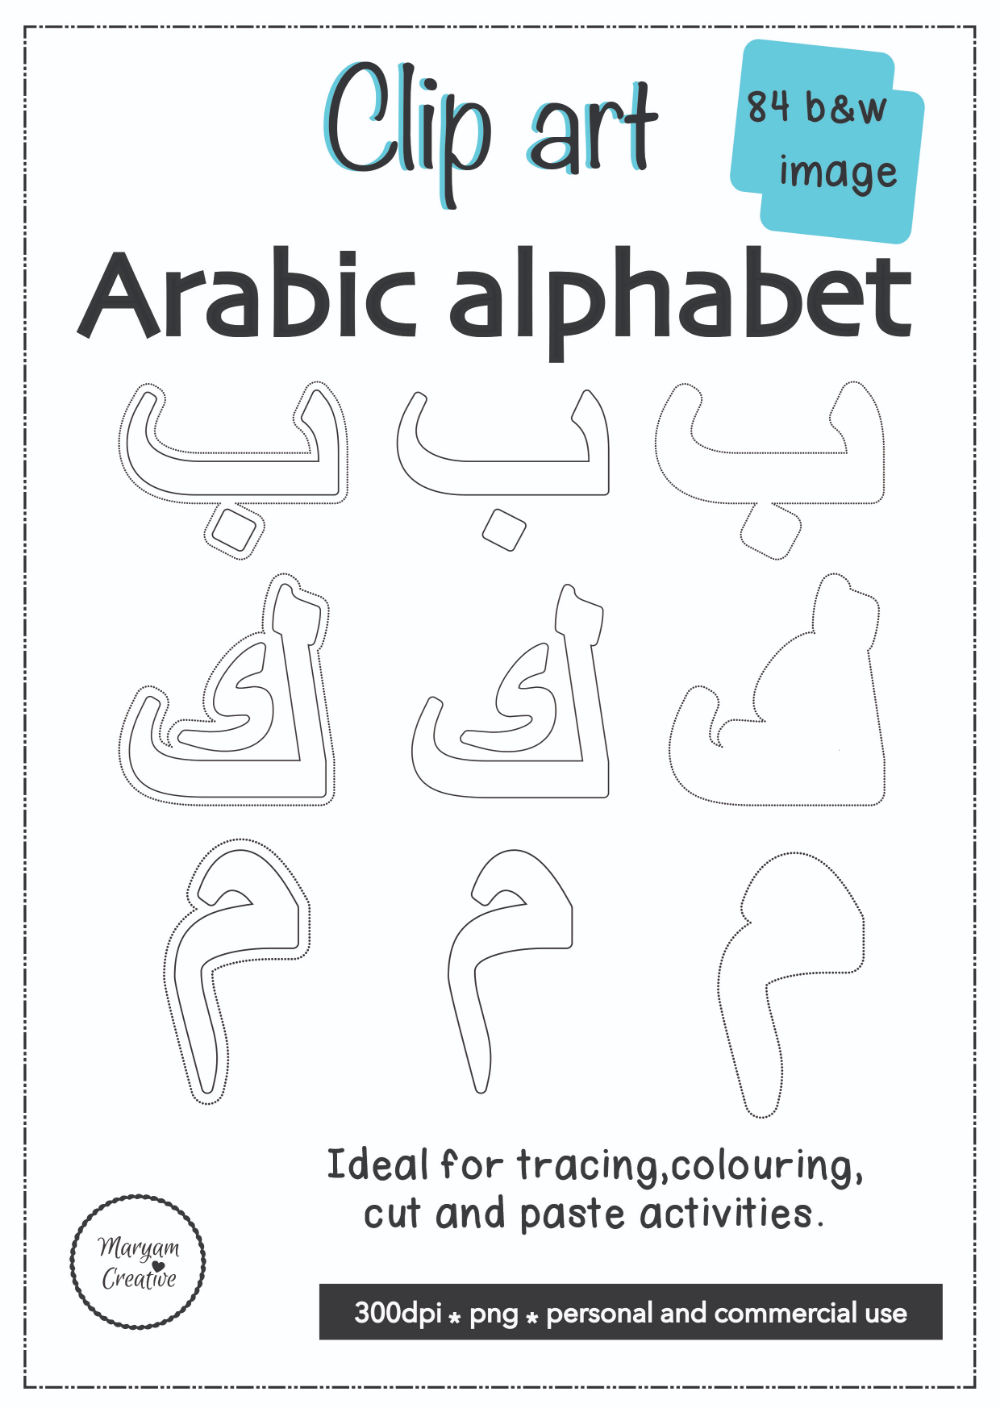 Pin by Get Organized on Arabic ressources Arabic